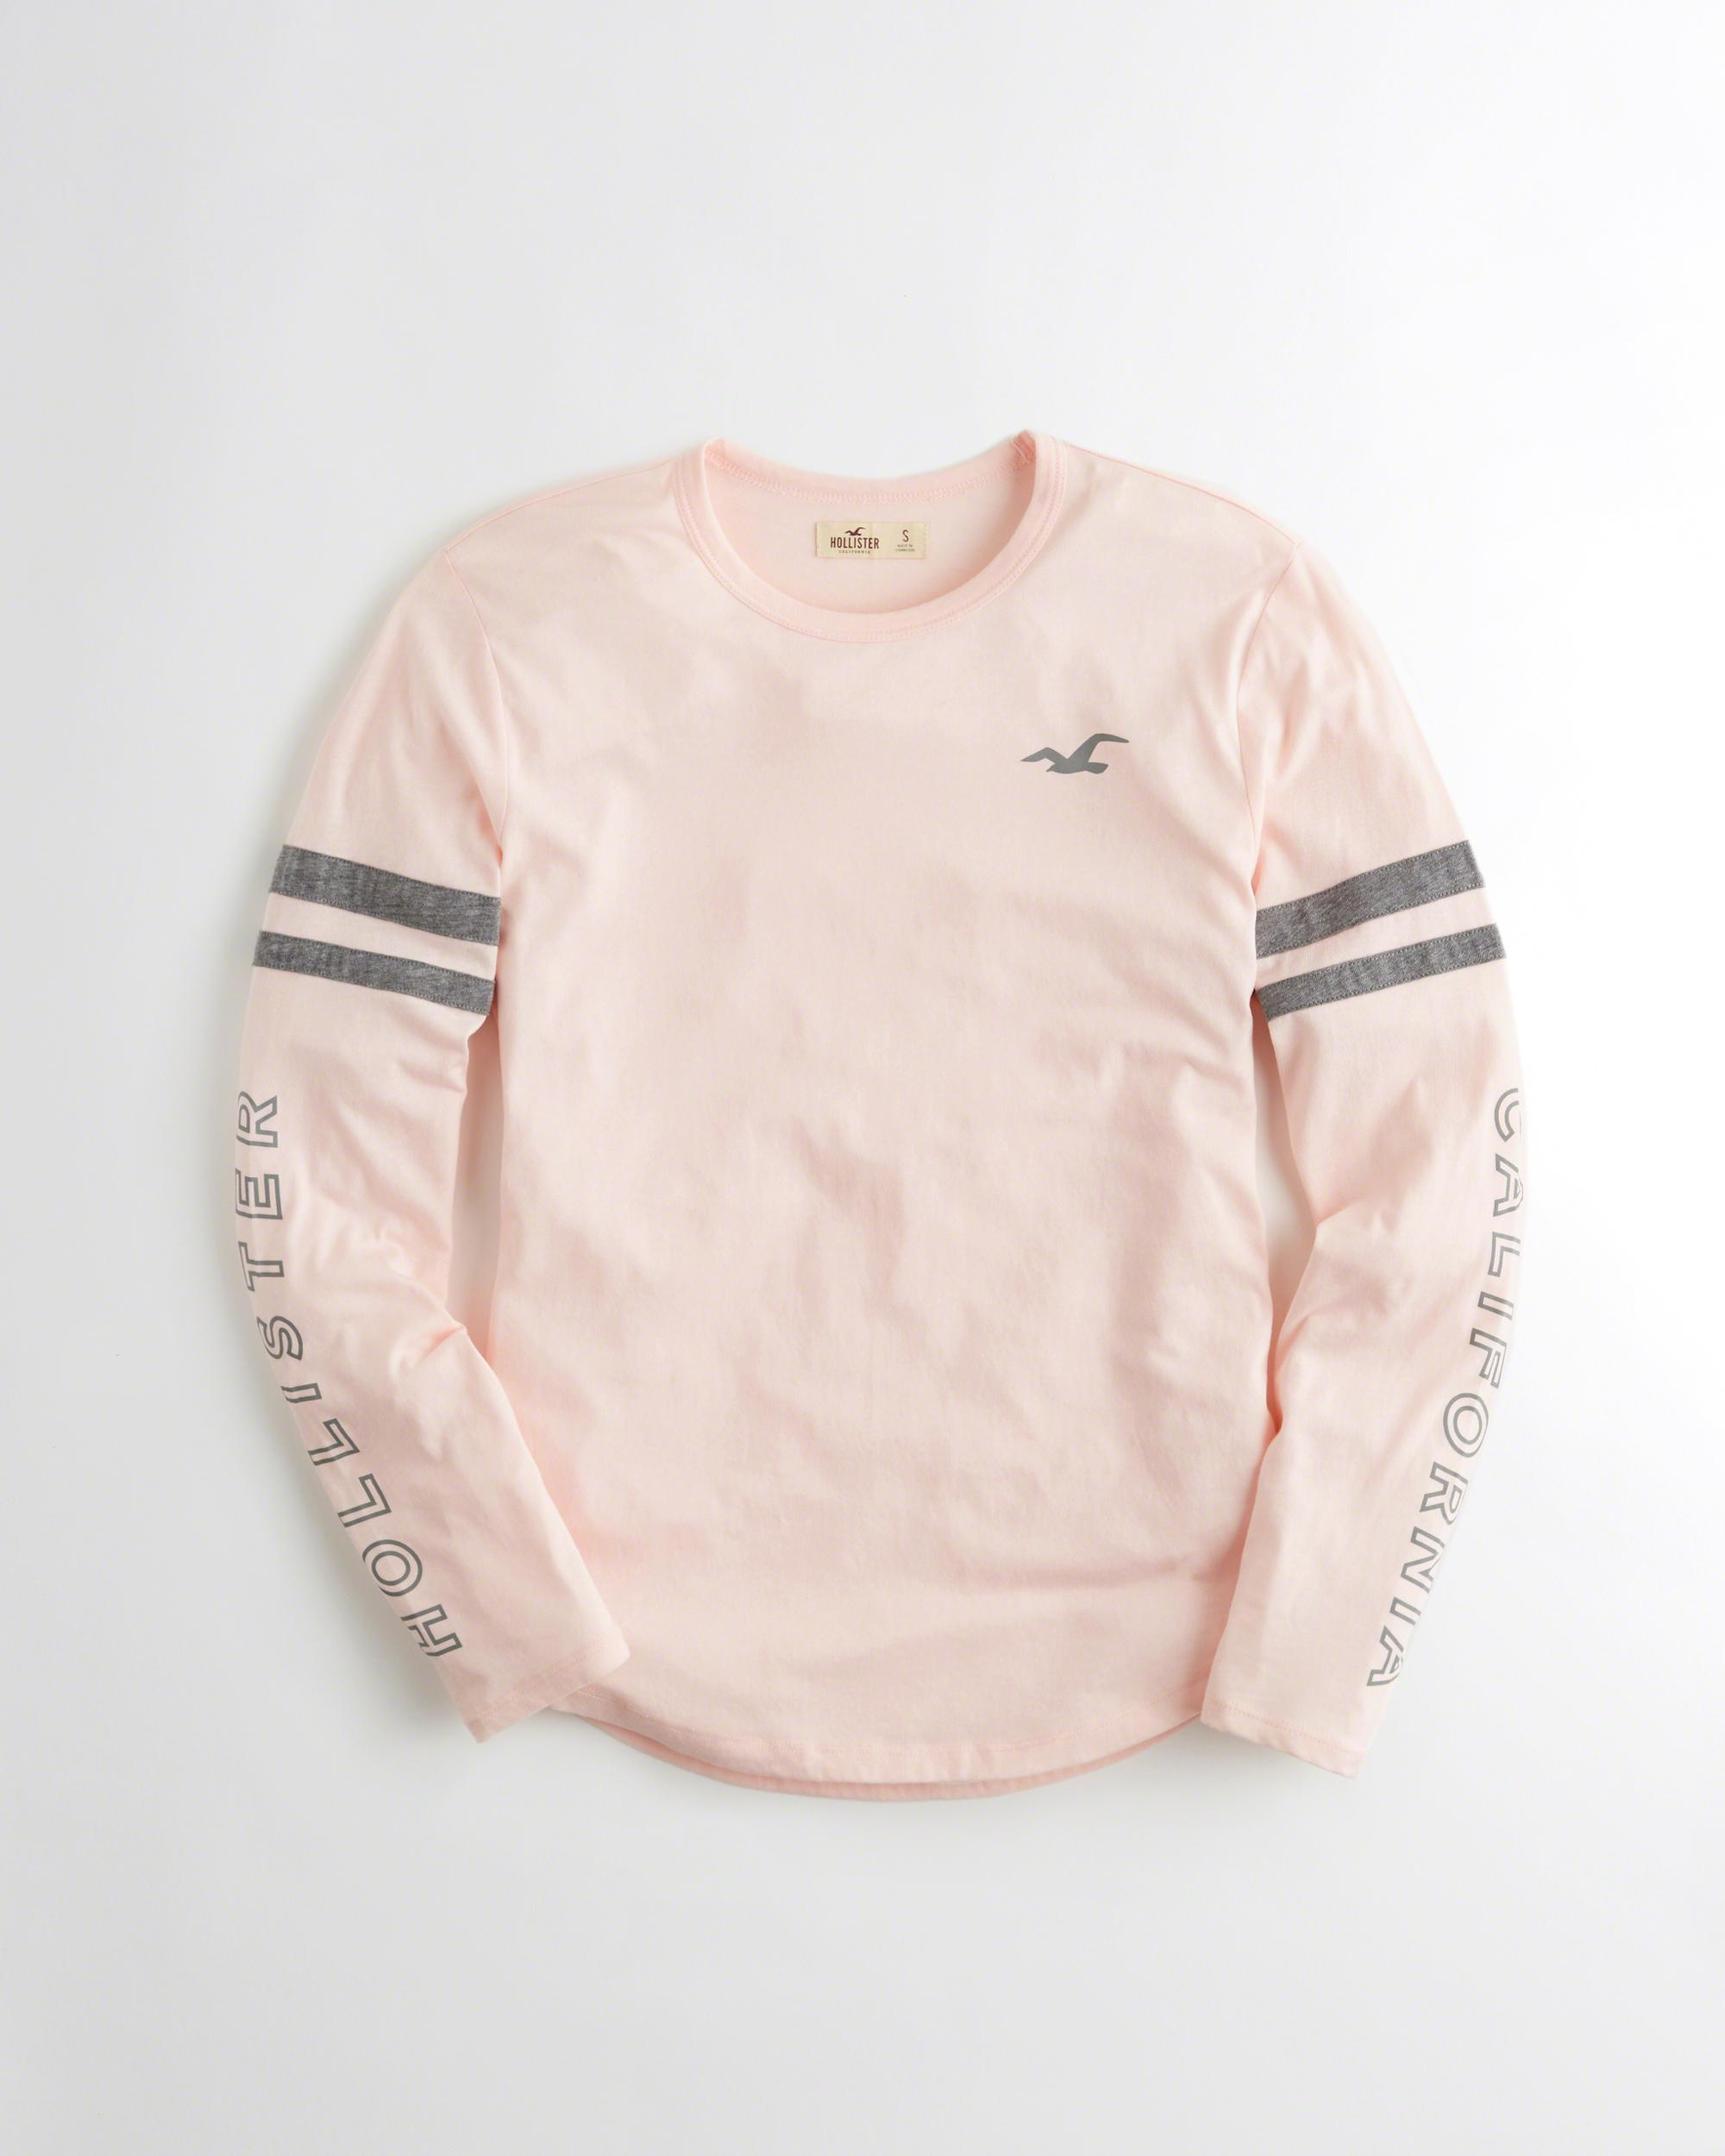 Lyst - Hollister Long-sleeve Graphic Tee in Pink b38f7540e04